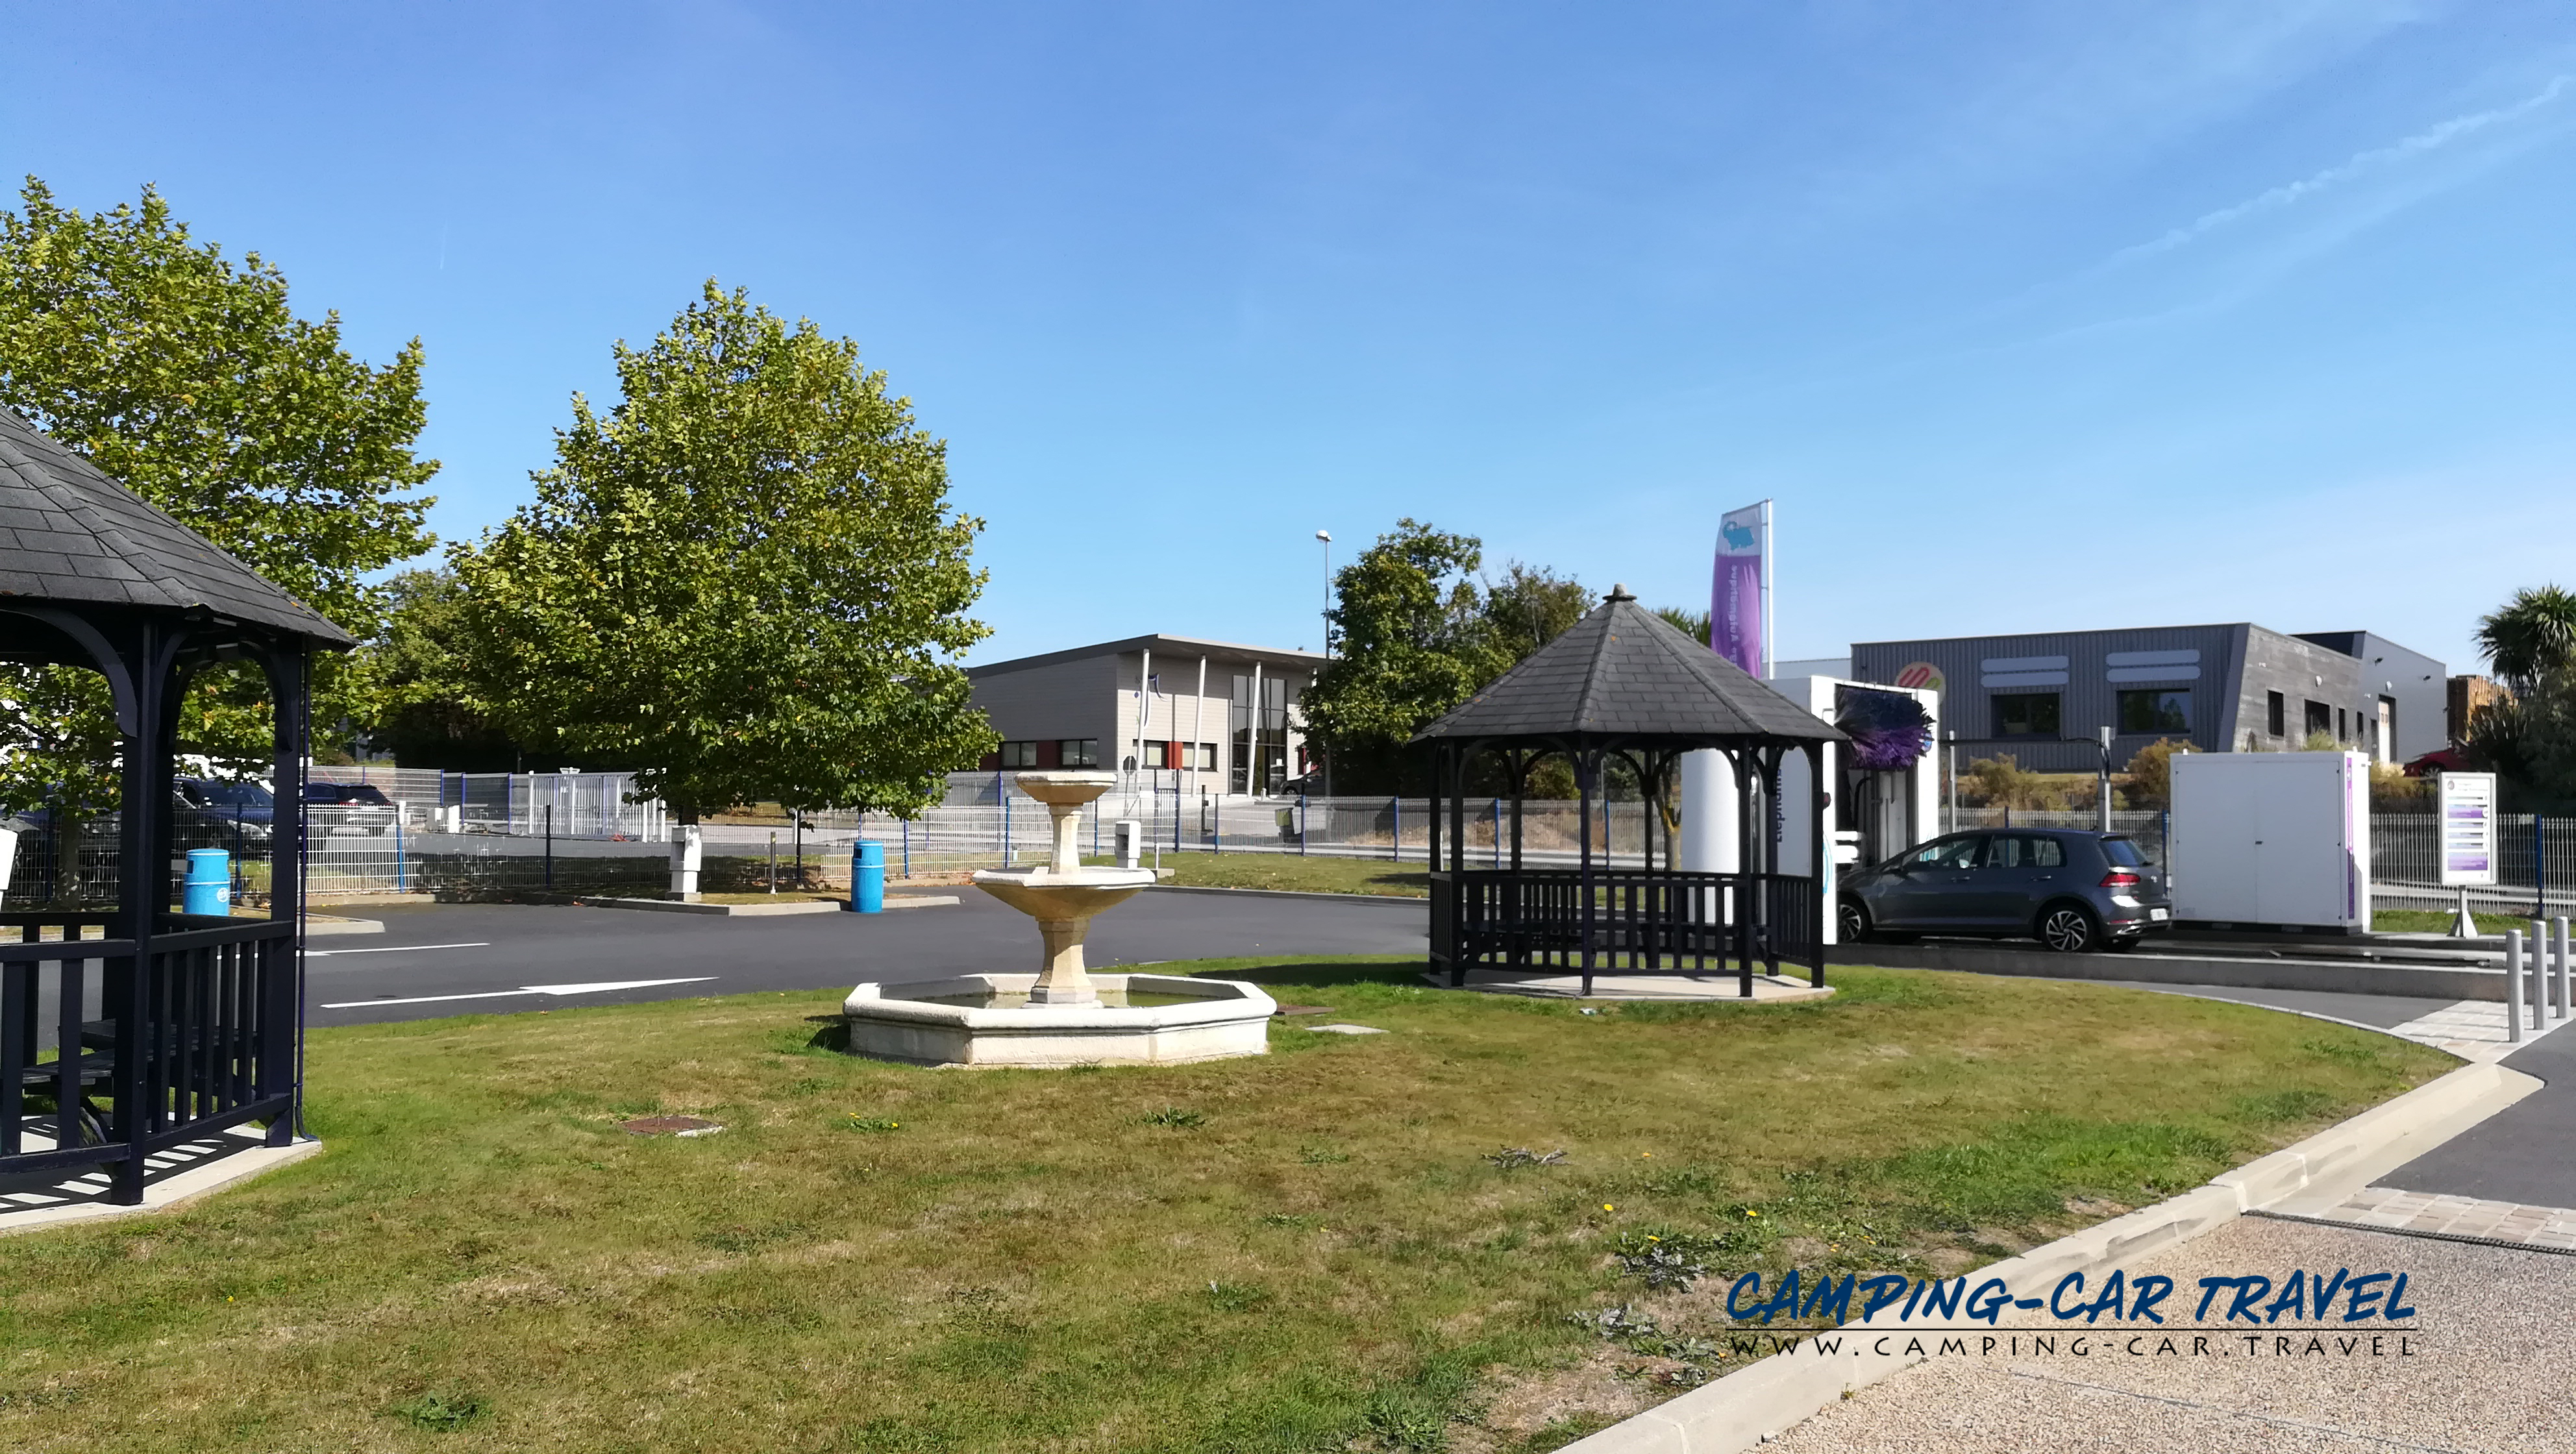 aire services camping car Valognes Manche Normandie